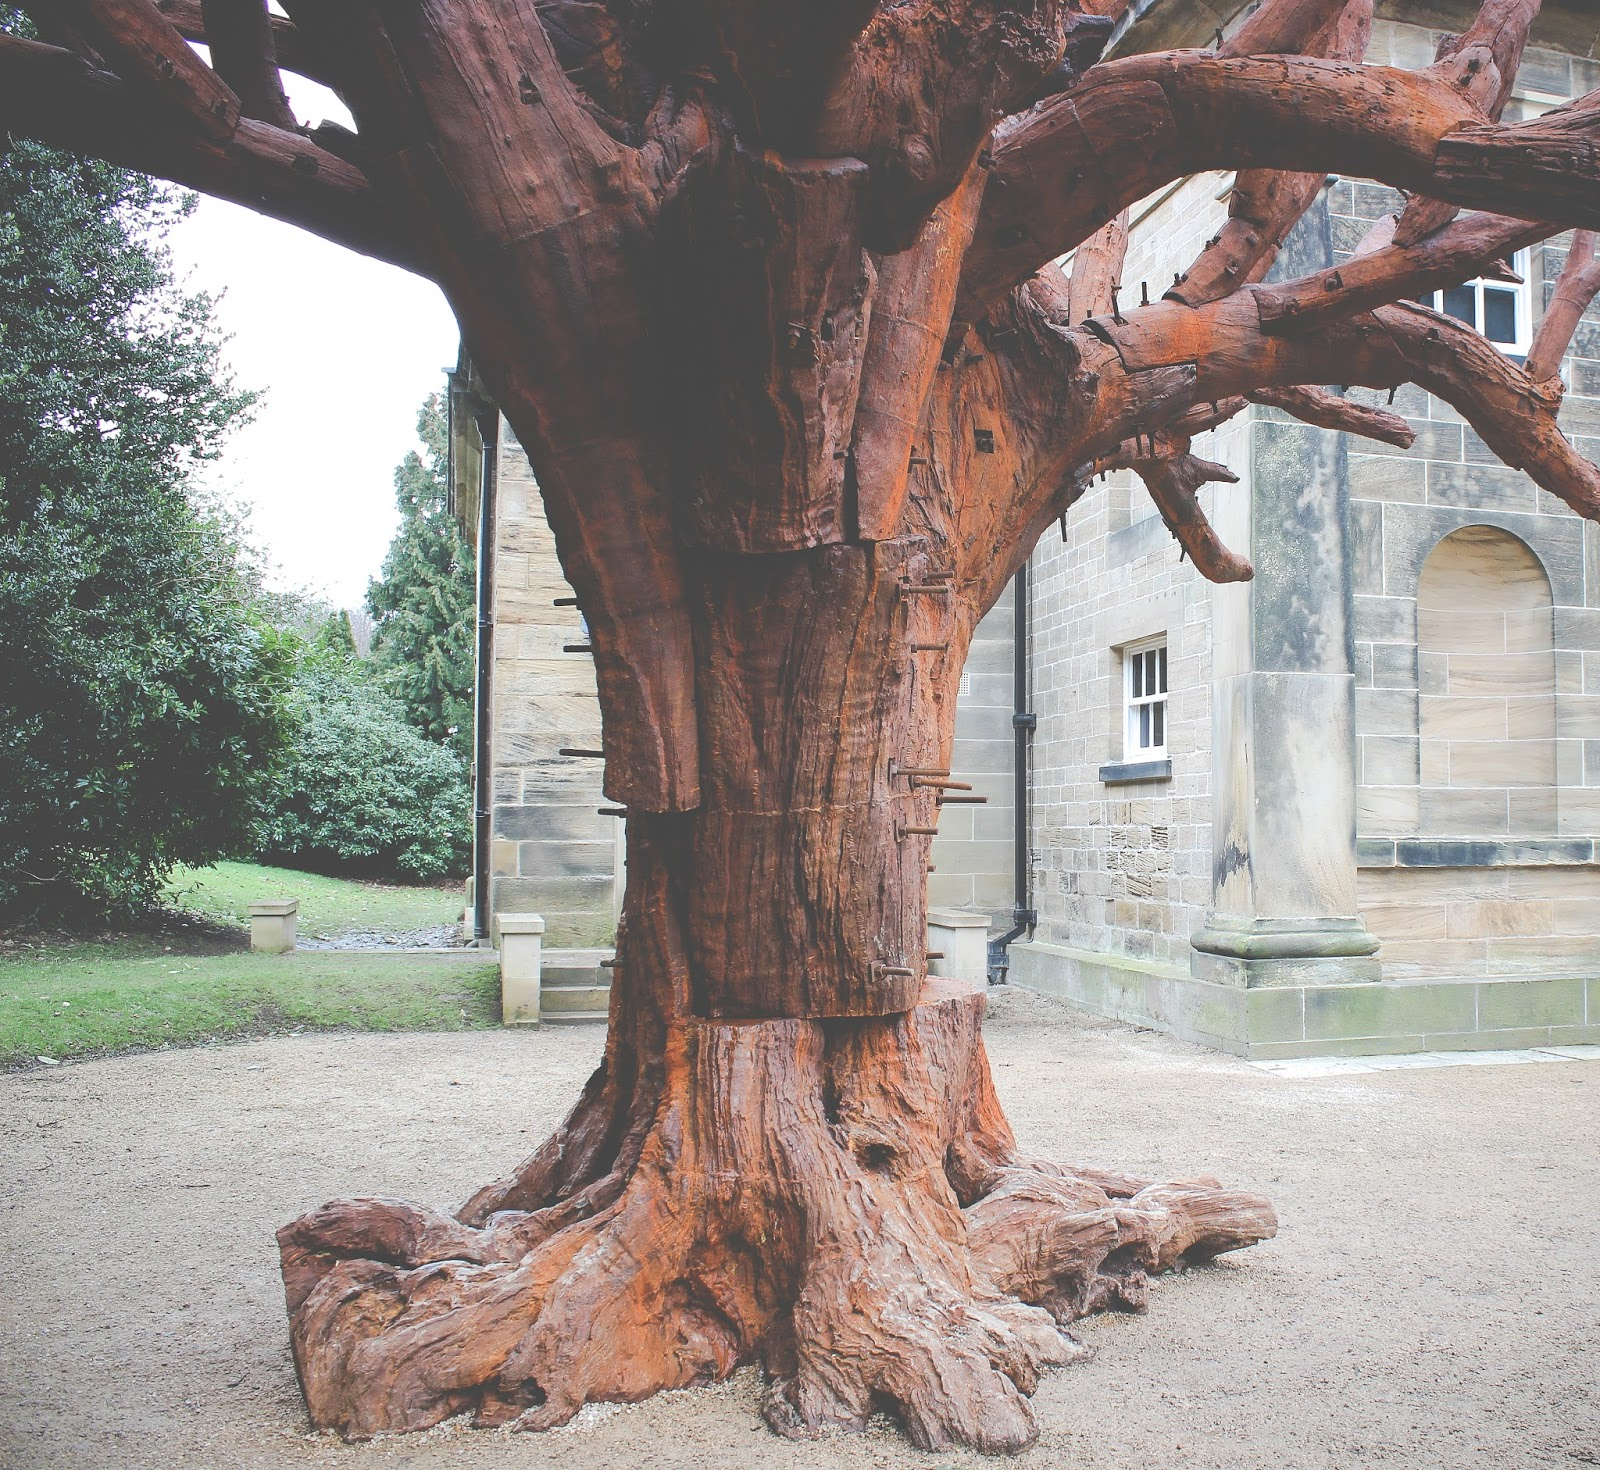 Yorkshire Sculpture Park - Ai Weiwei's 'Iron Tree'